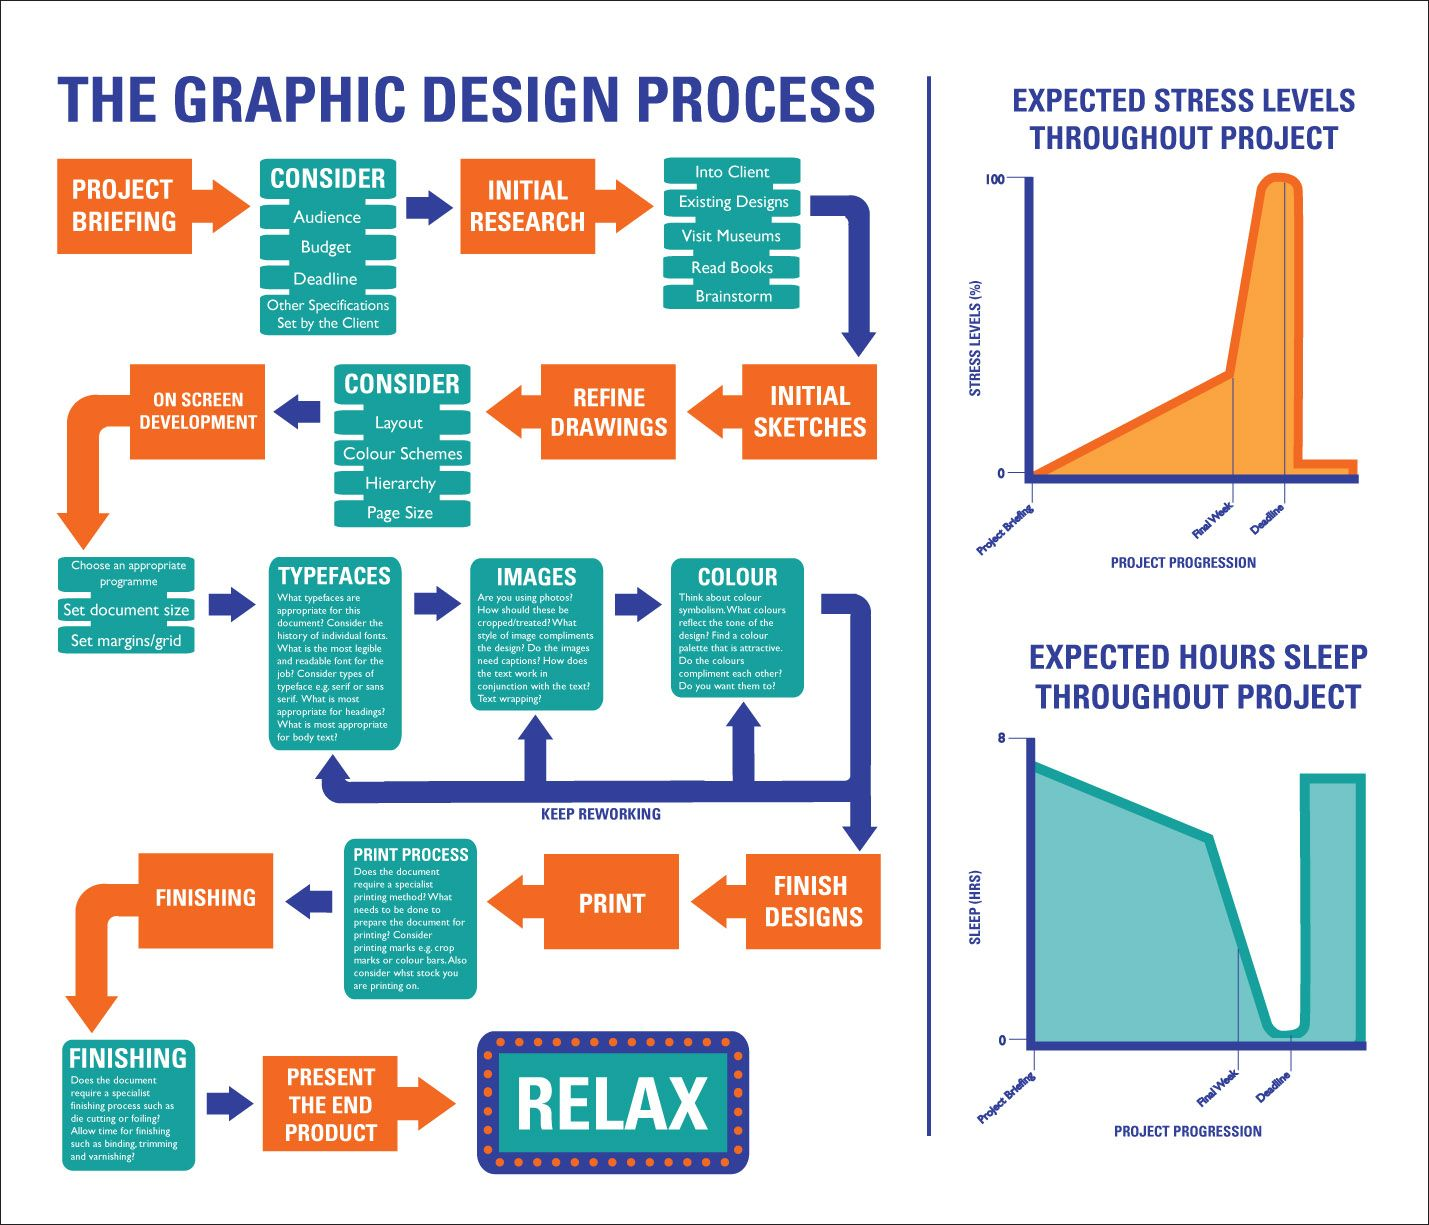 Graphic Design Processes Flow Charts Strategic Planning Pinterest Design Process